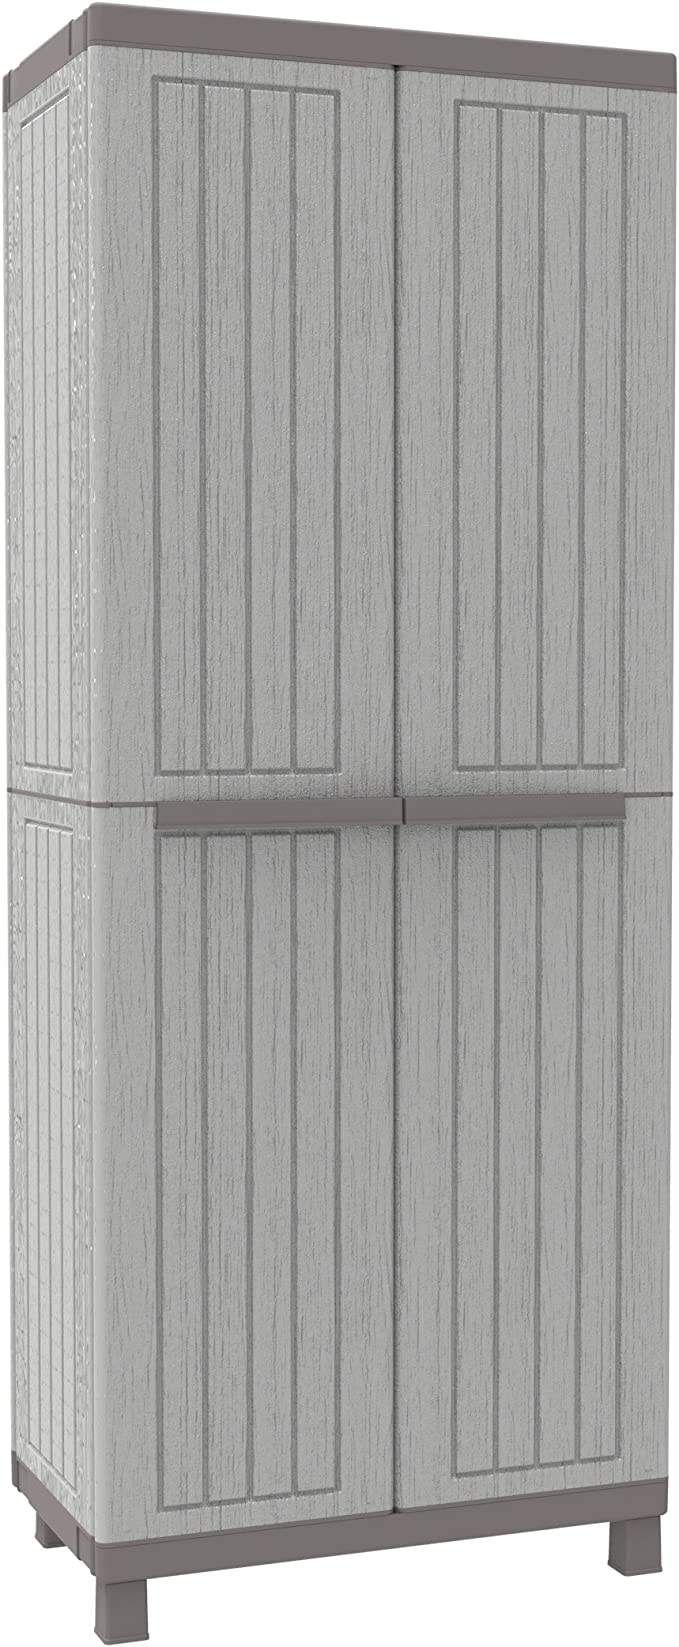 Amazon Com Terry 1002722 Tall Wardrobe Plastic Broom Health